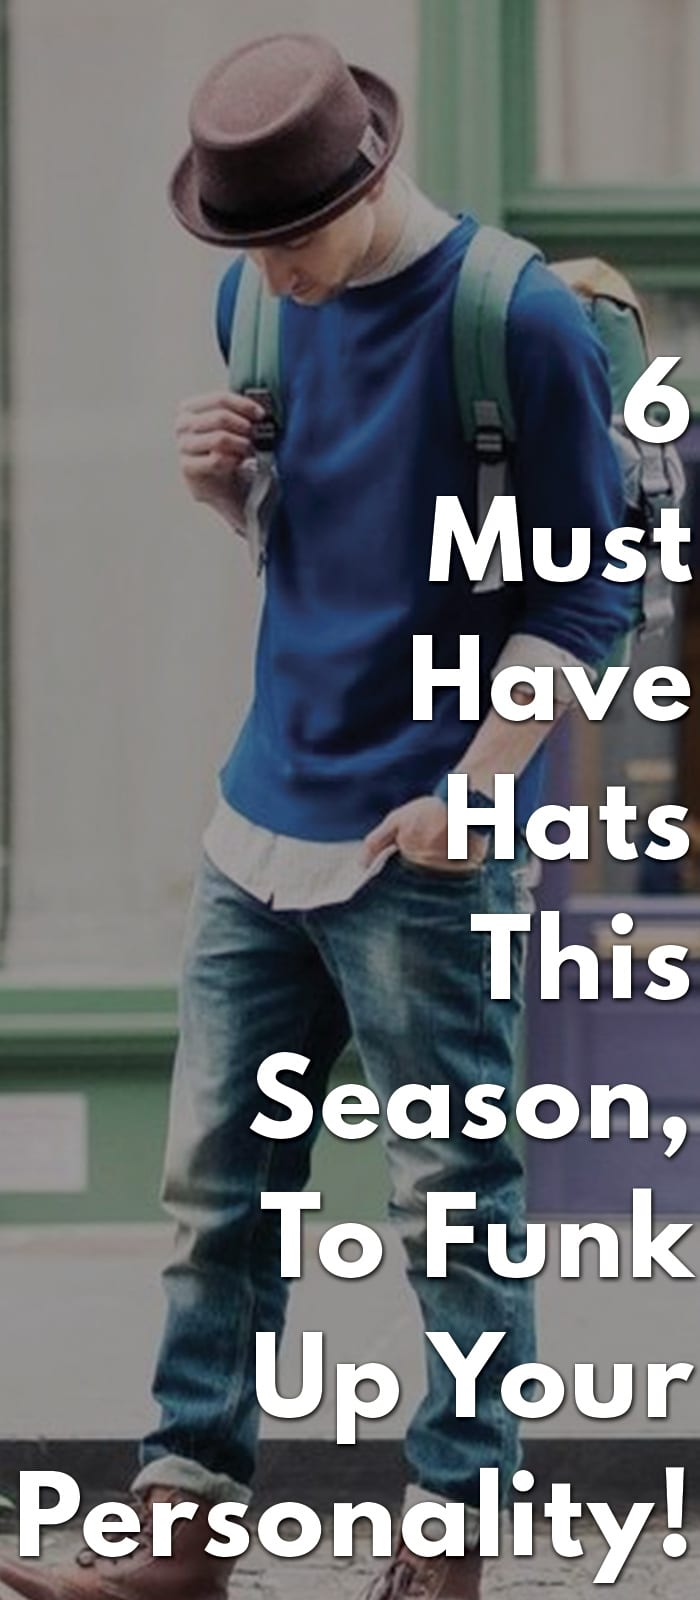 6-Must-Have-Hats-This-Season,-To-Funk-Up-Your-Personality!